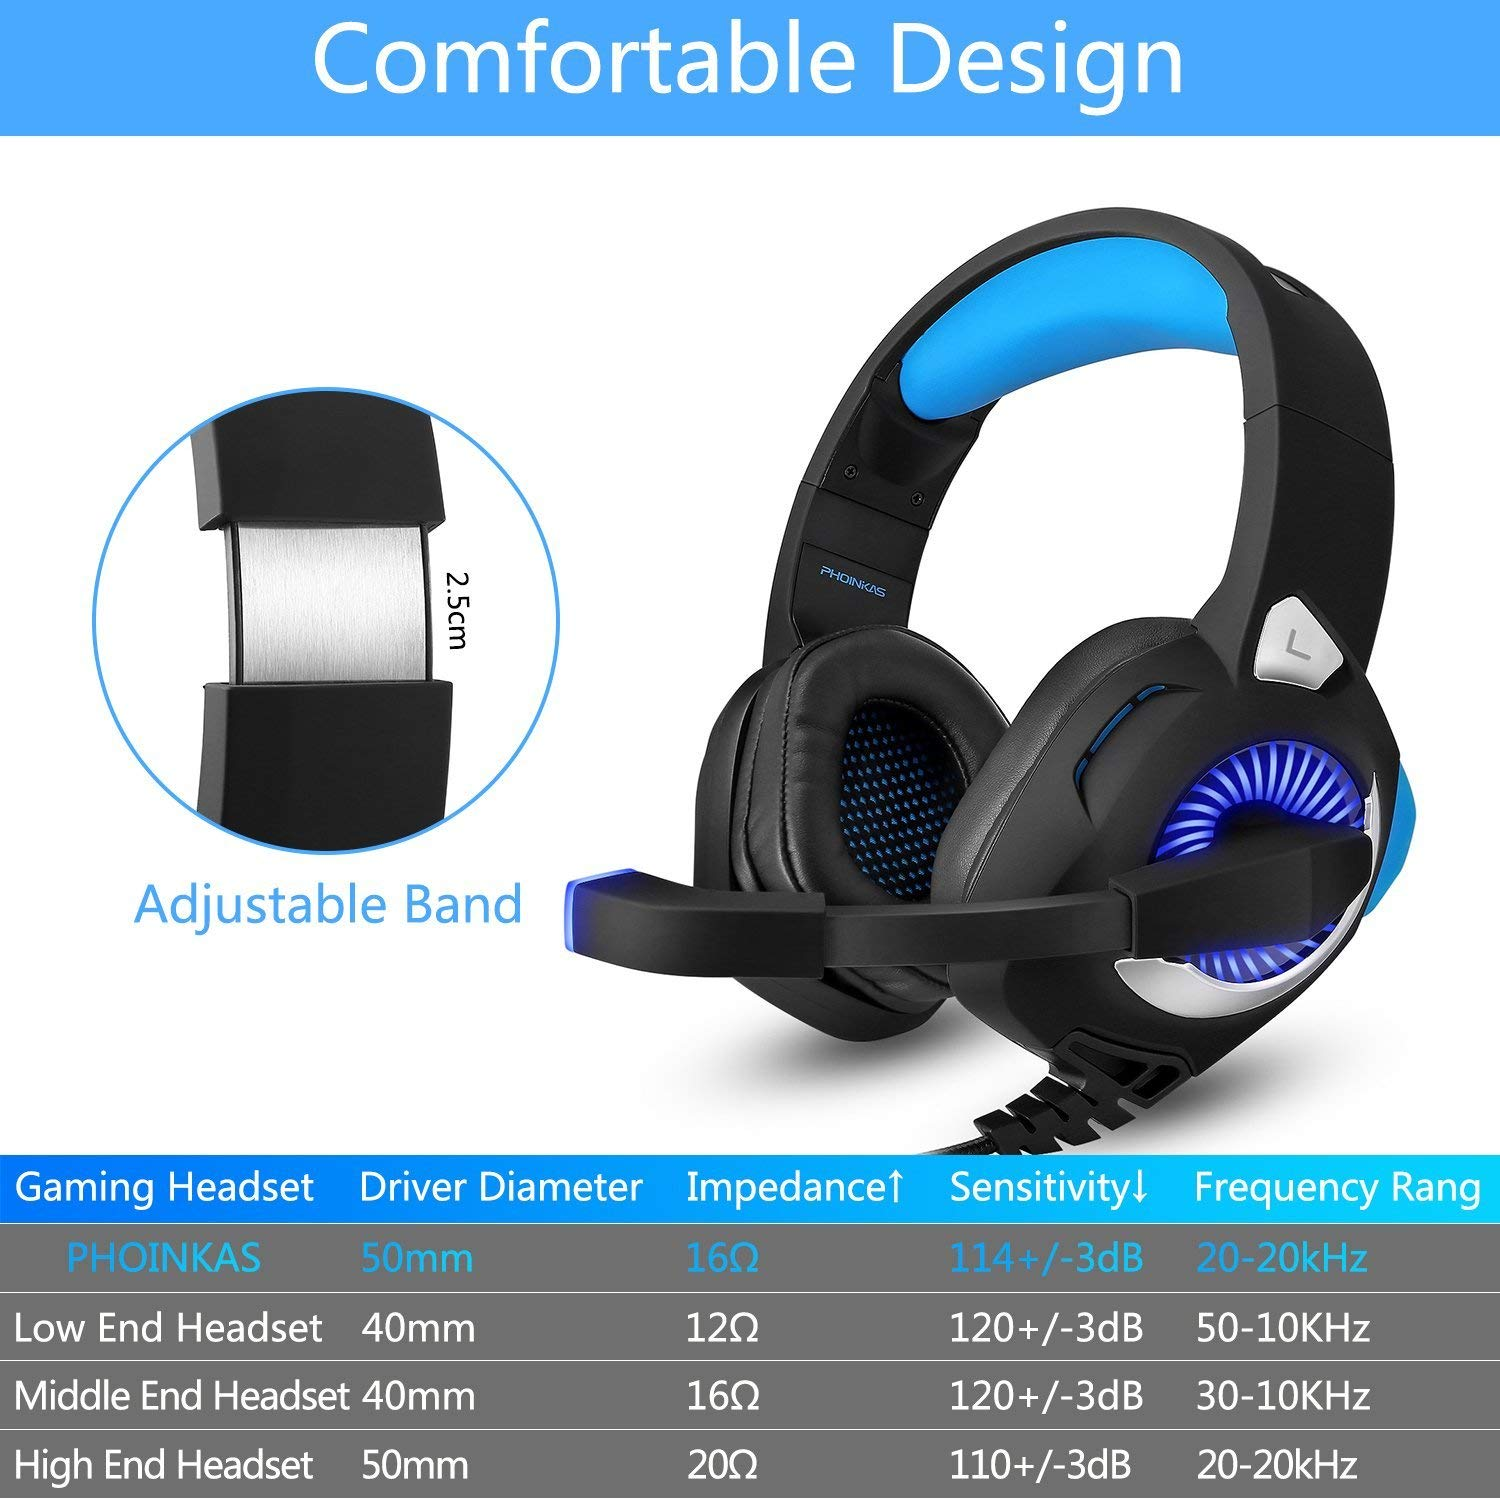 amazon com: phoinikas h9 wired stereo gaming headset, ps4 xbox one, over  ear headphones with noise isolating mic, led light, volume control for  laptop, pc,